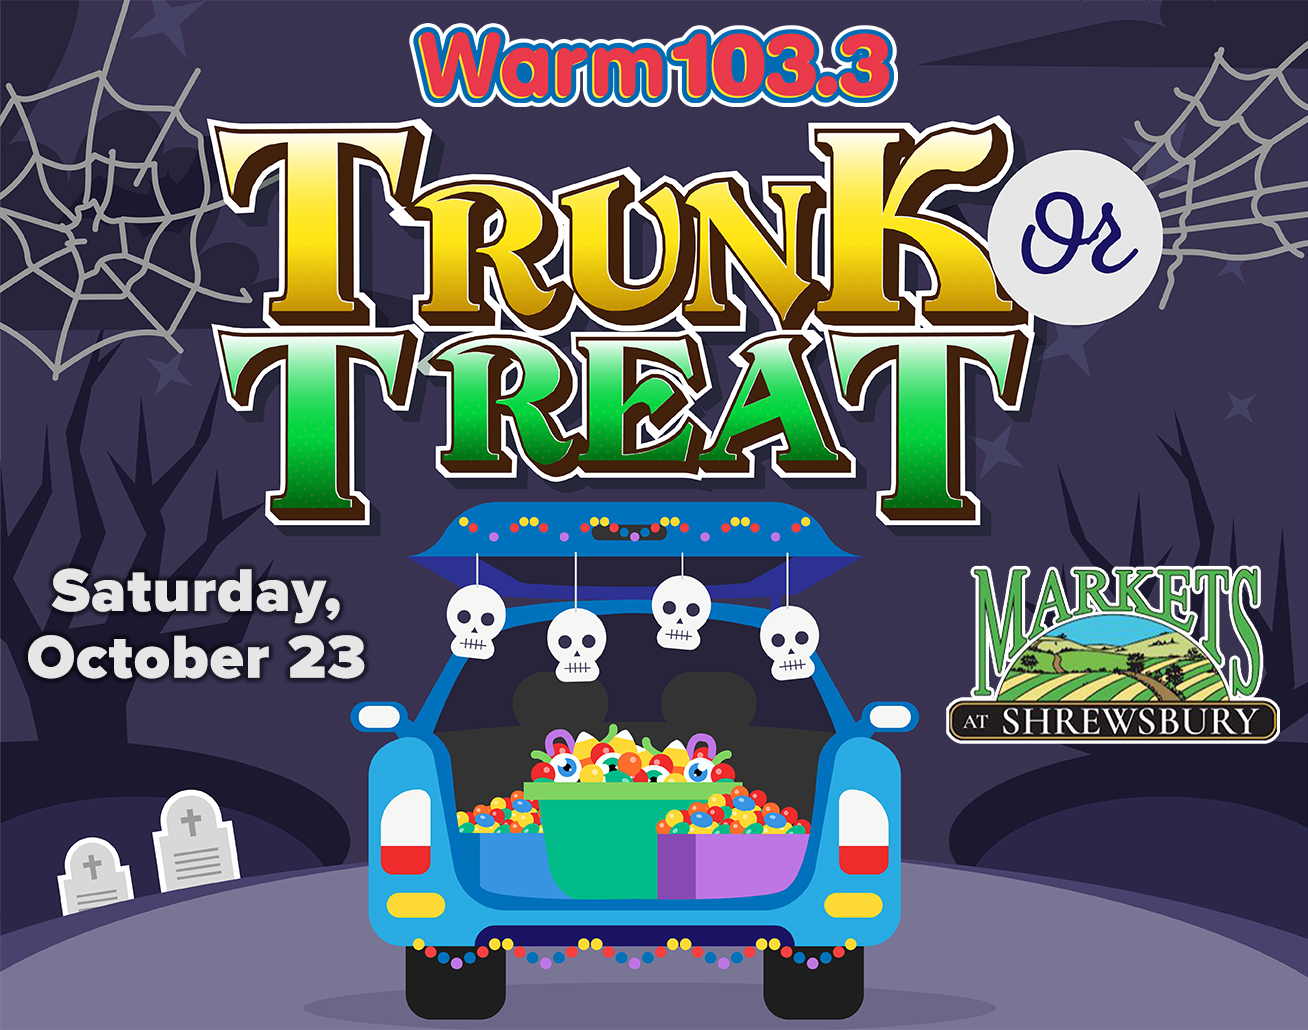 Register your Car for Trunk or Treat at the Markets at Shrewsbury